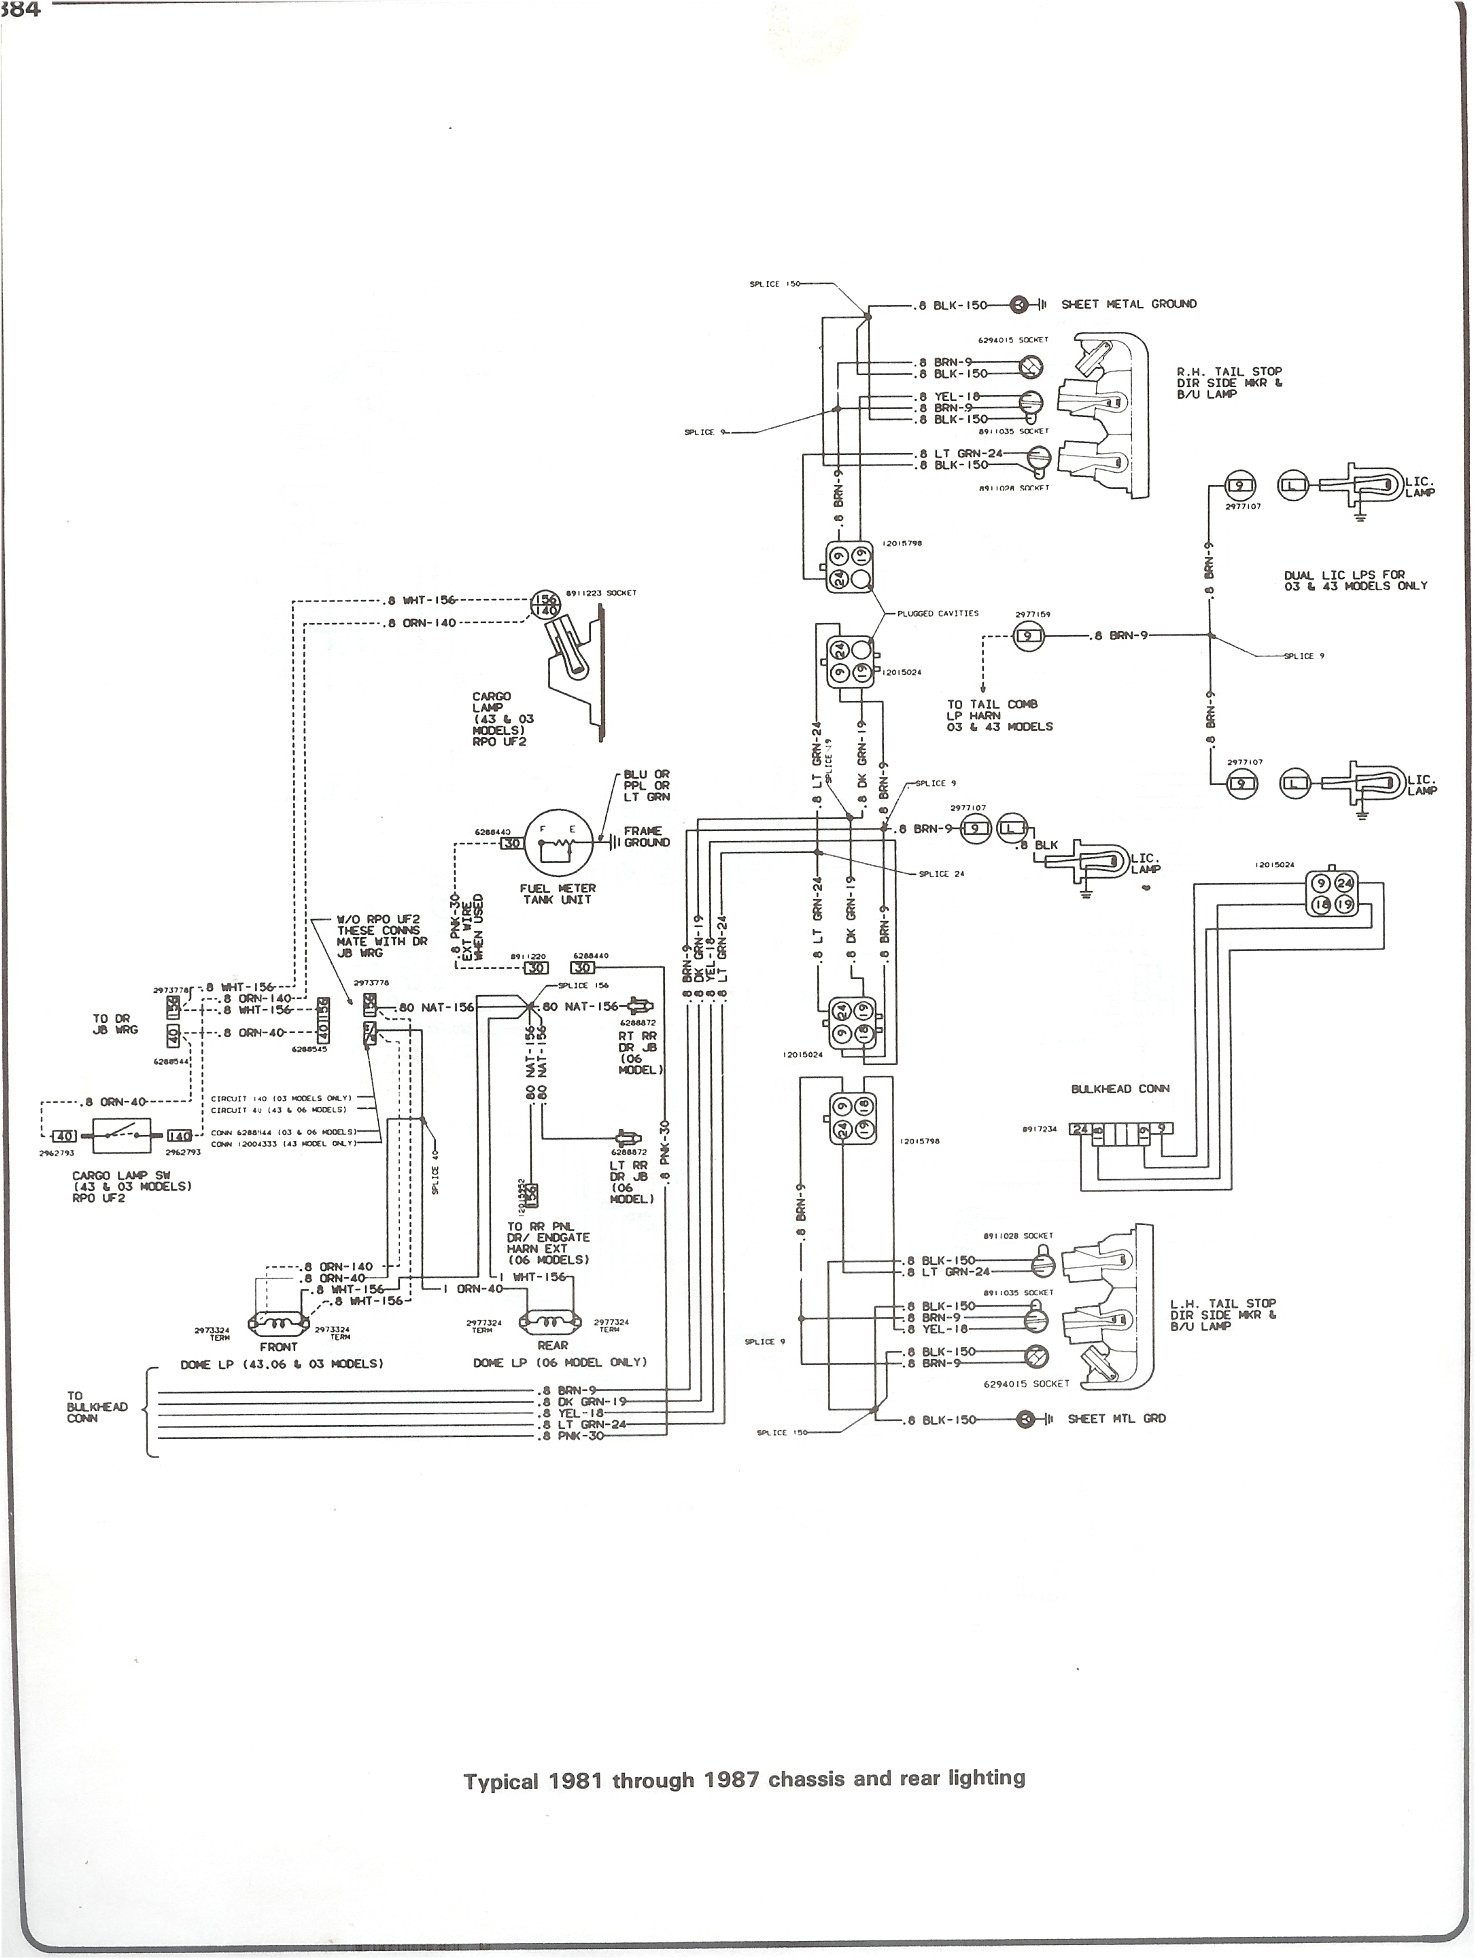 82 chevy c10 fuse diagram data wiring diagram 1986 Chevy Truck Fuse Box